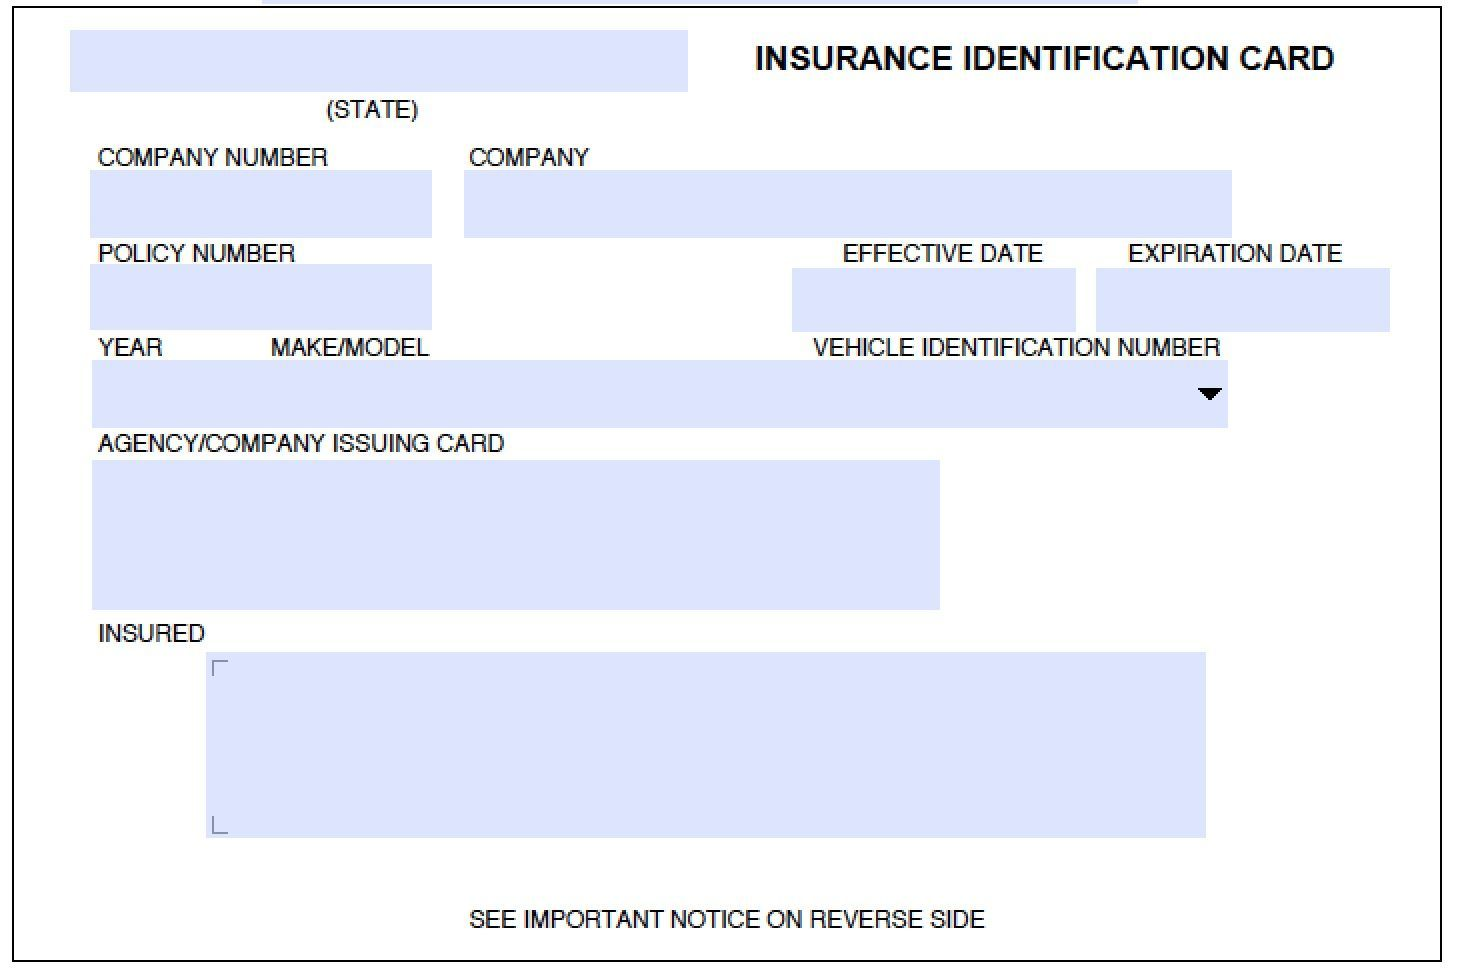 geico insurance card template download  auto insurance card template - Onwe.bioinnovate.co